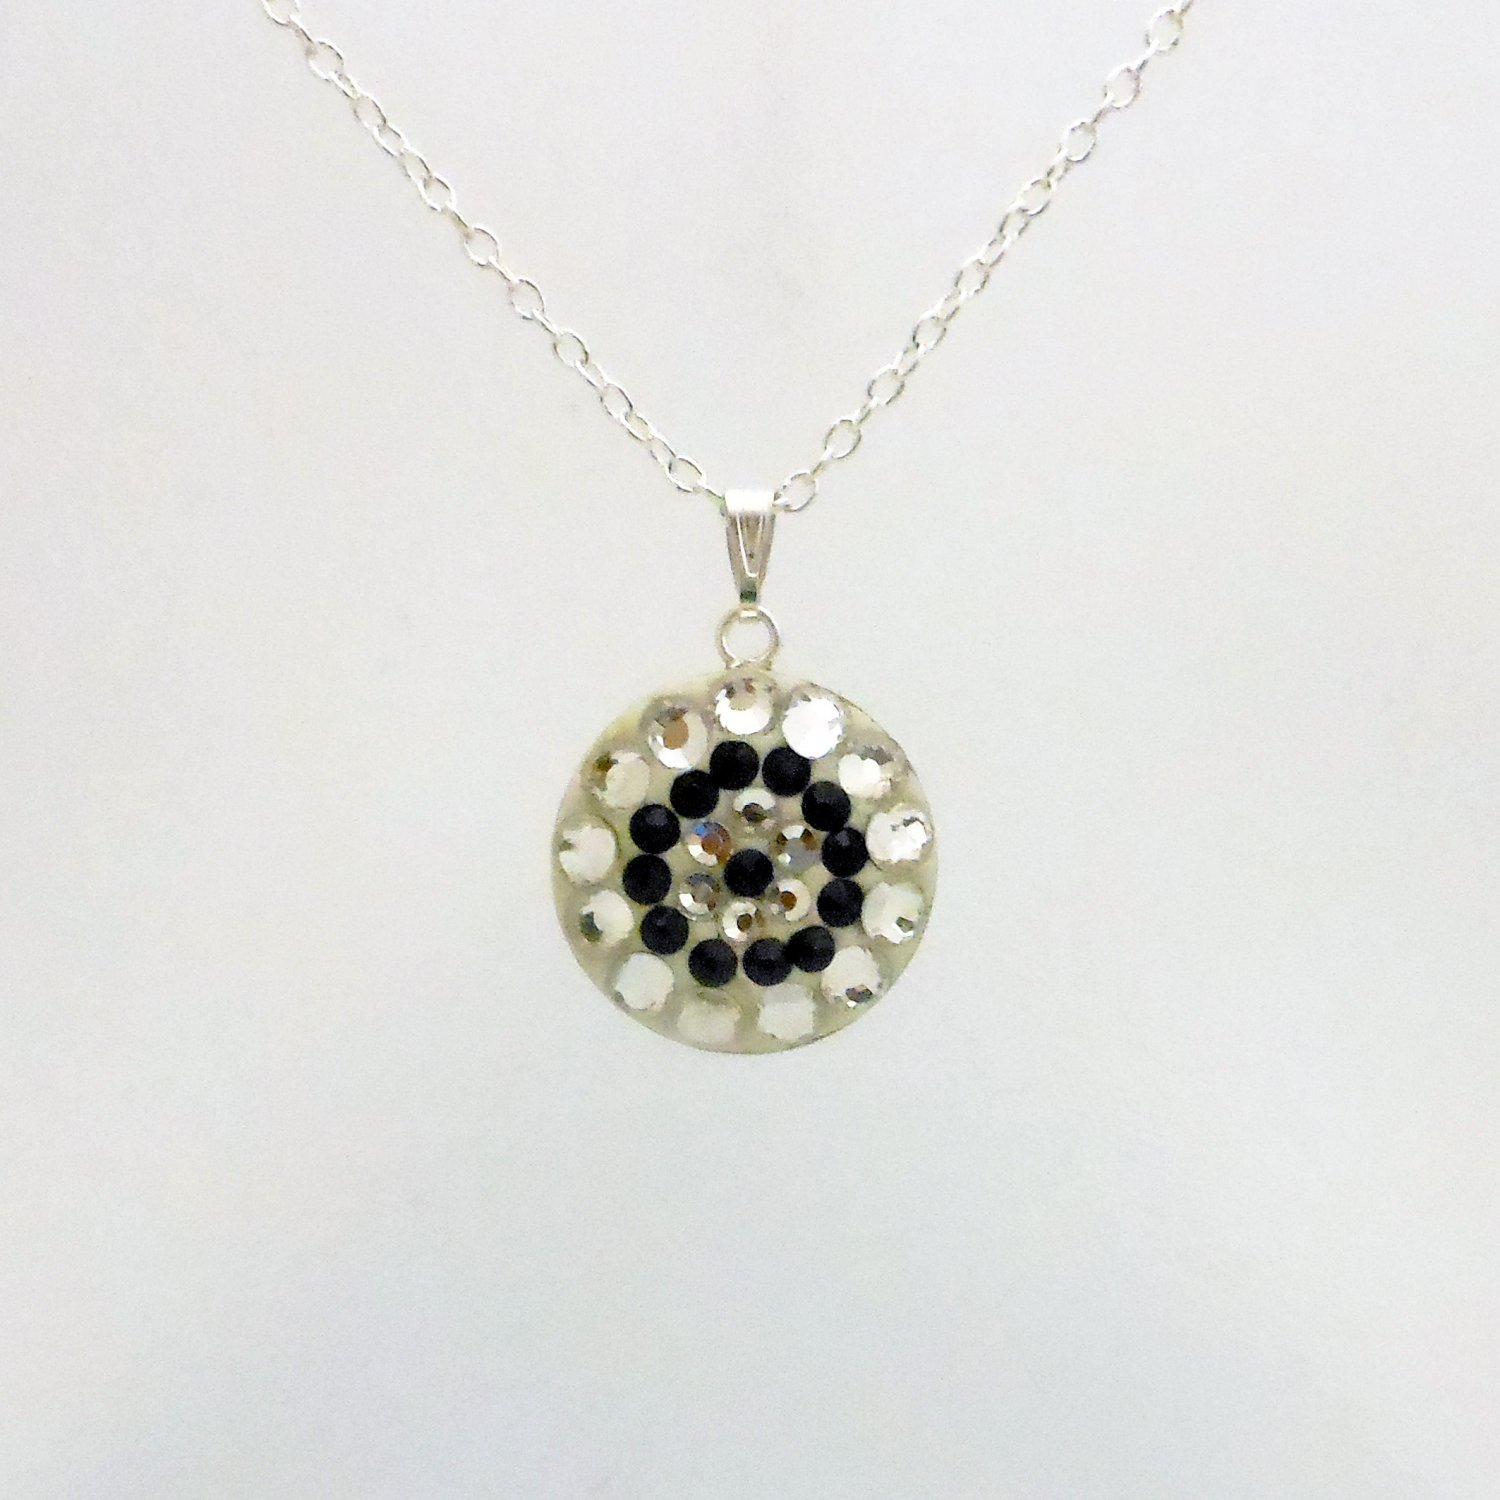 Round Silver and Black Swarovski Crystal Pendant Necklace